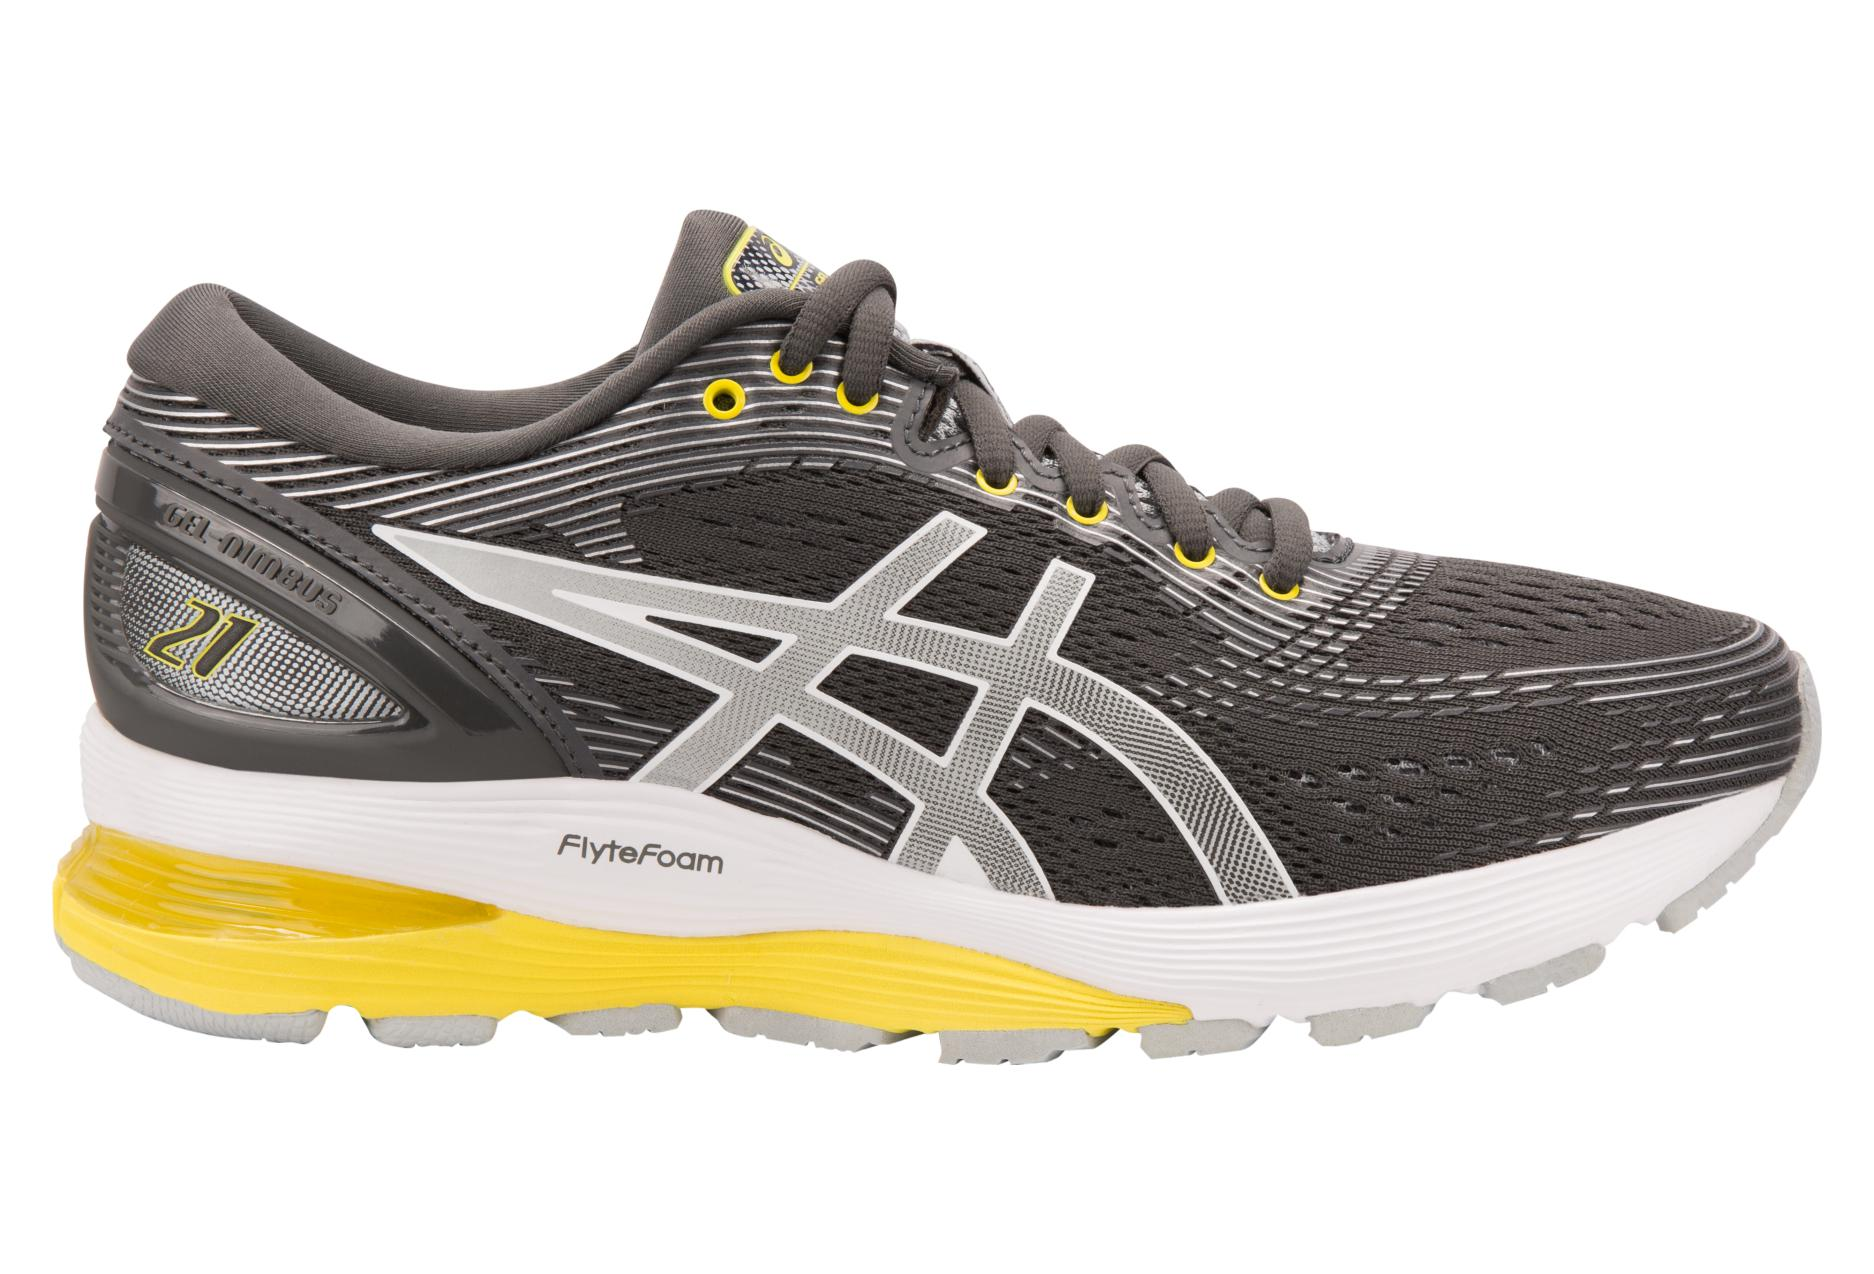 Asics Shoes Run Gel Nimbus 21 Grey Yellow Women